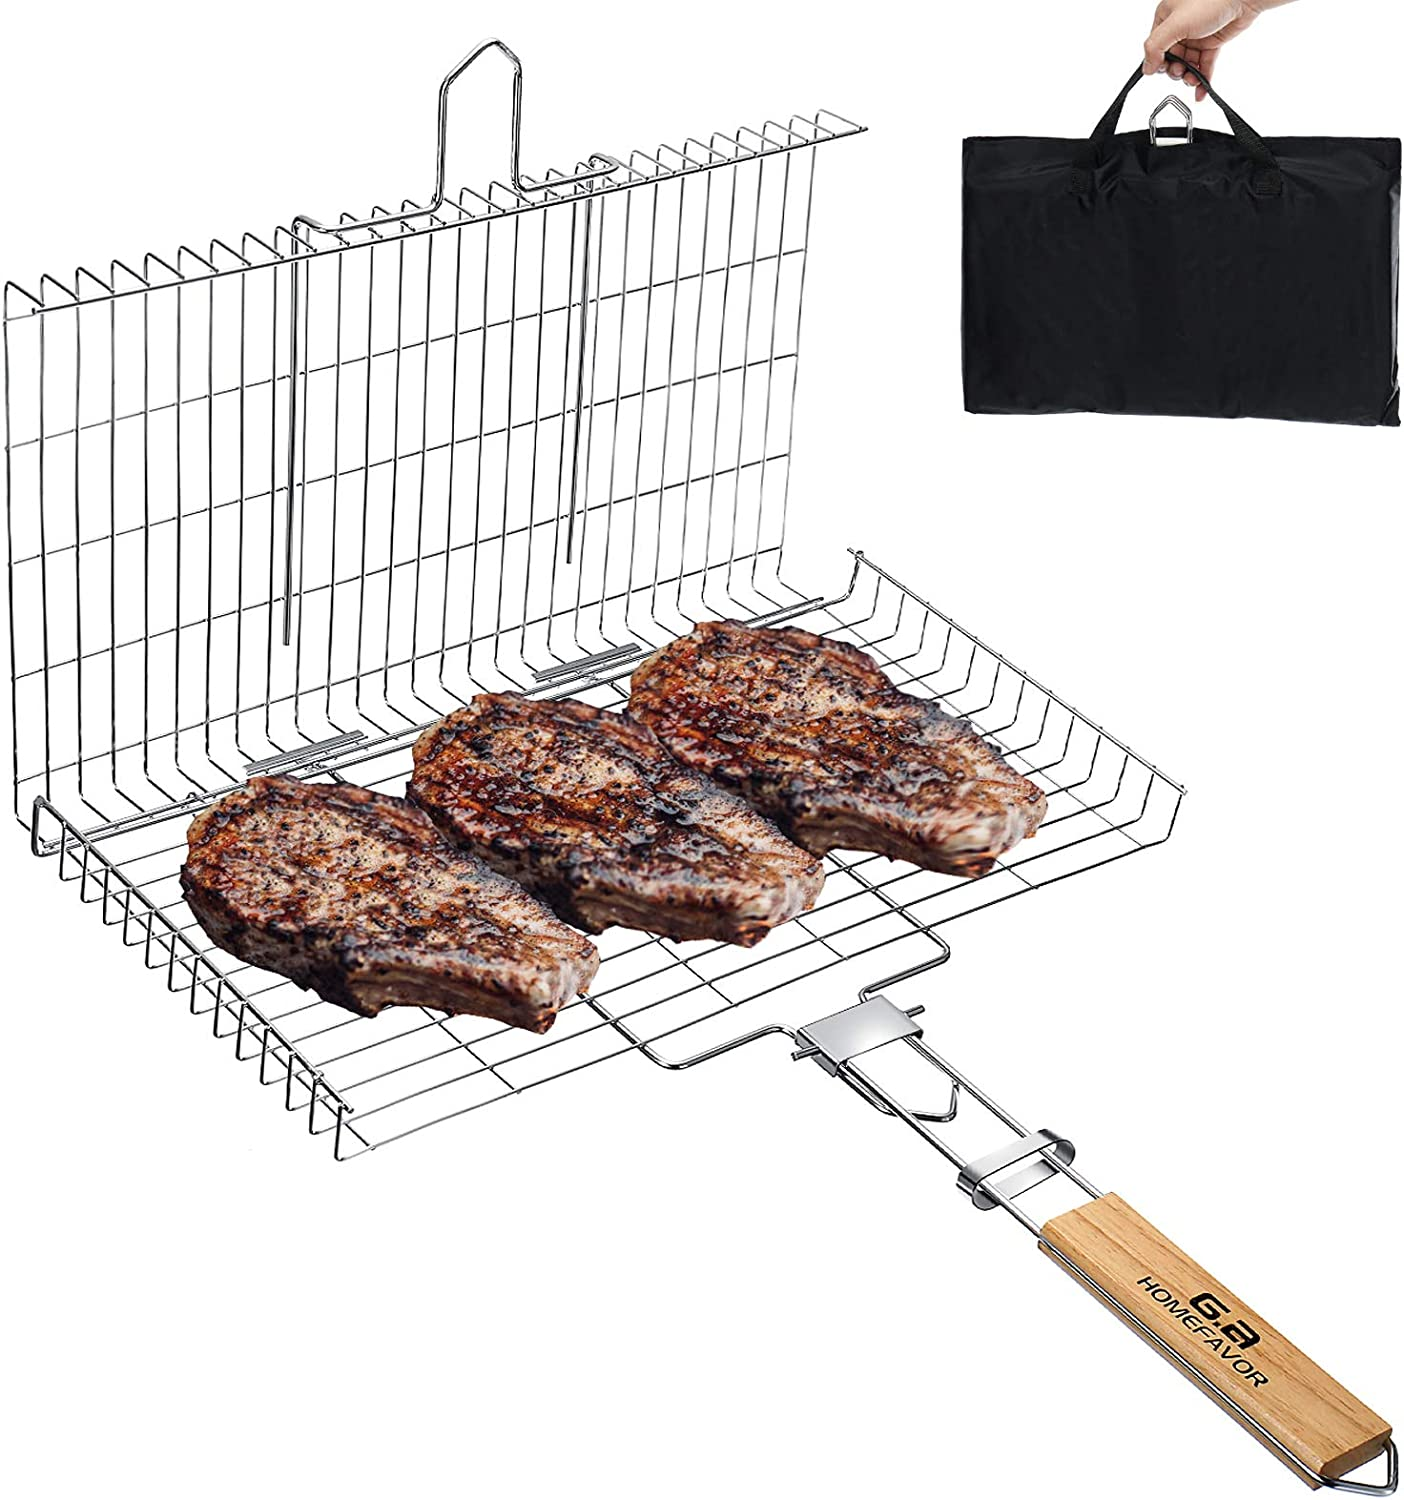 """G.a HOMEFAVOR Large Size Portable Grill Basket, 17"""" x 10"""" Stainless Steel 304 BBQ Grilling Basket for Ribs Fish Tomahawk Steak Seafood Chicken + Storage Bag"""